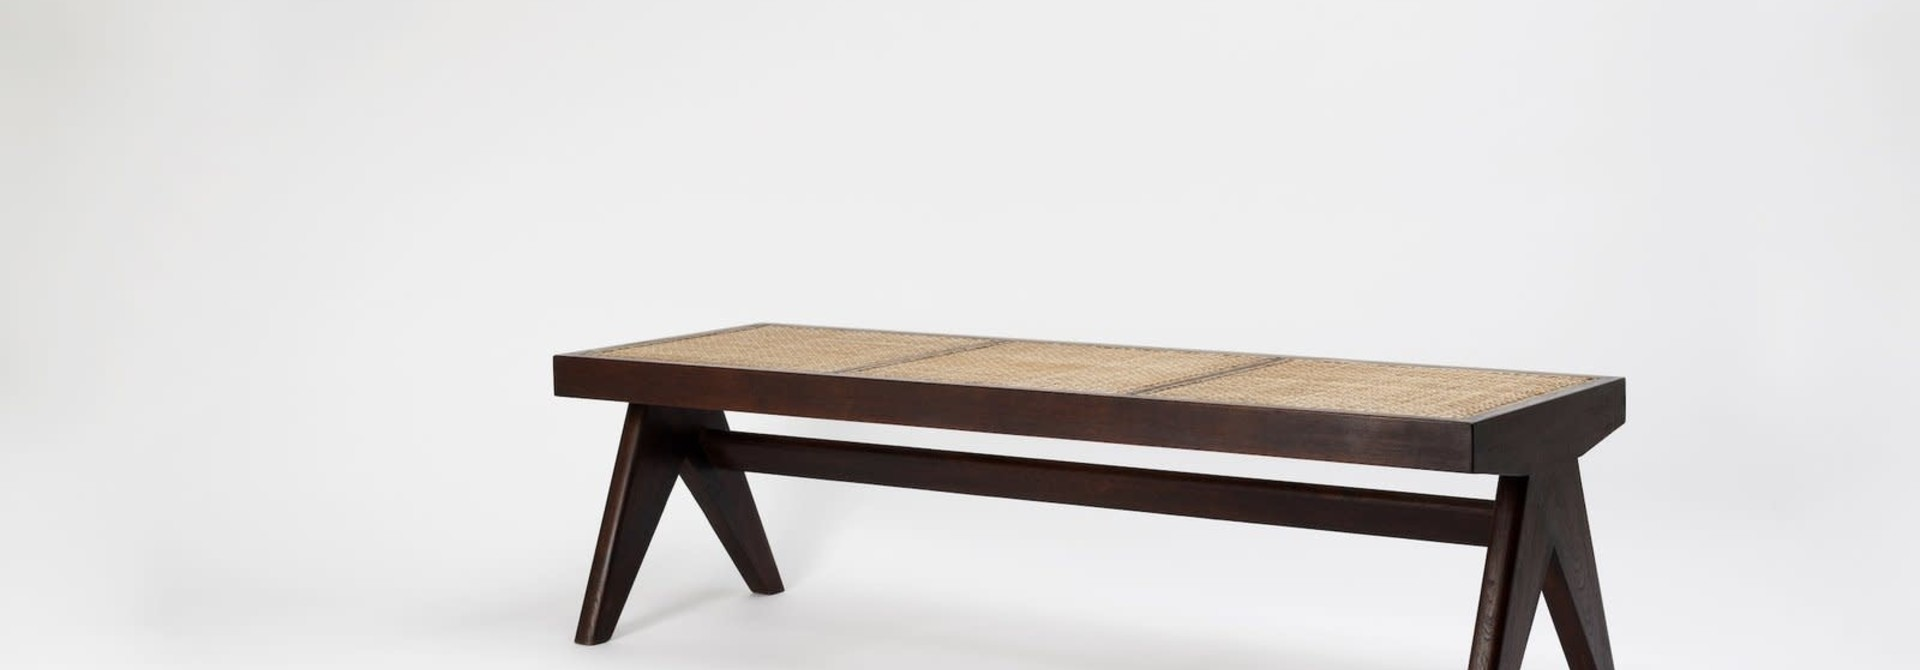 Library Bench - Pierre Jeanneret